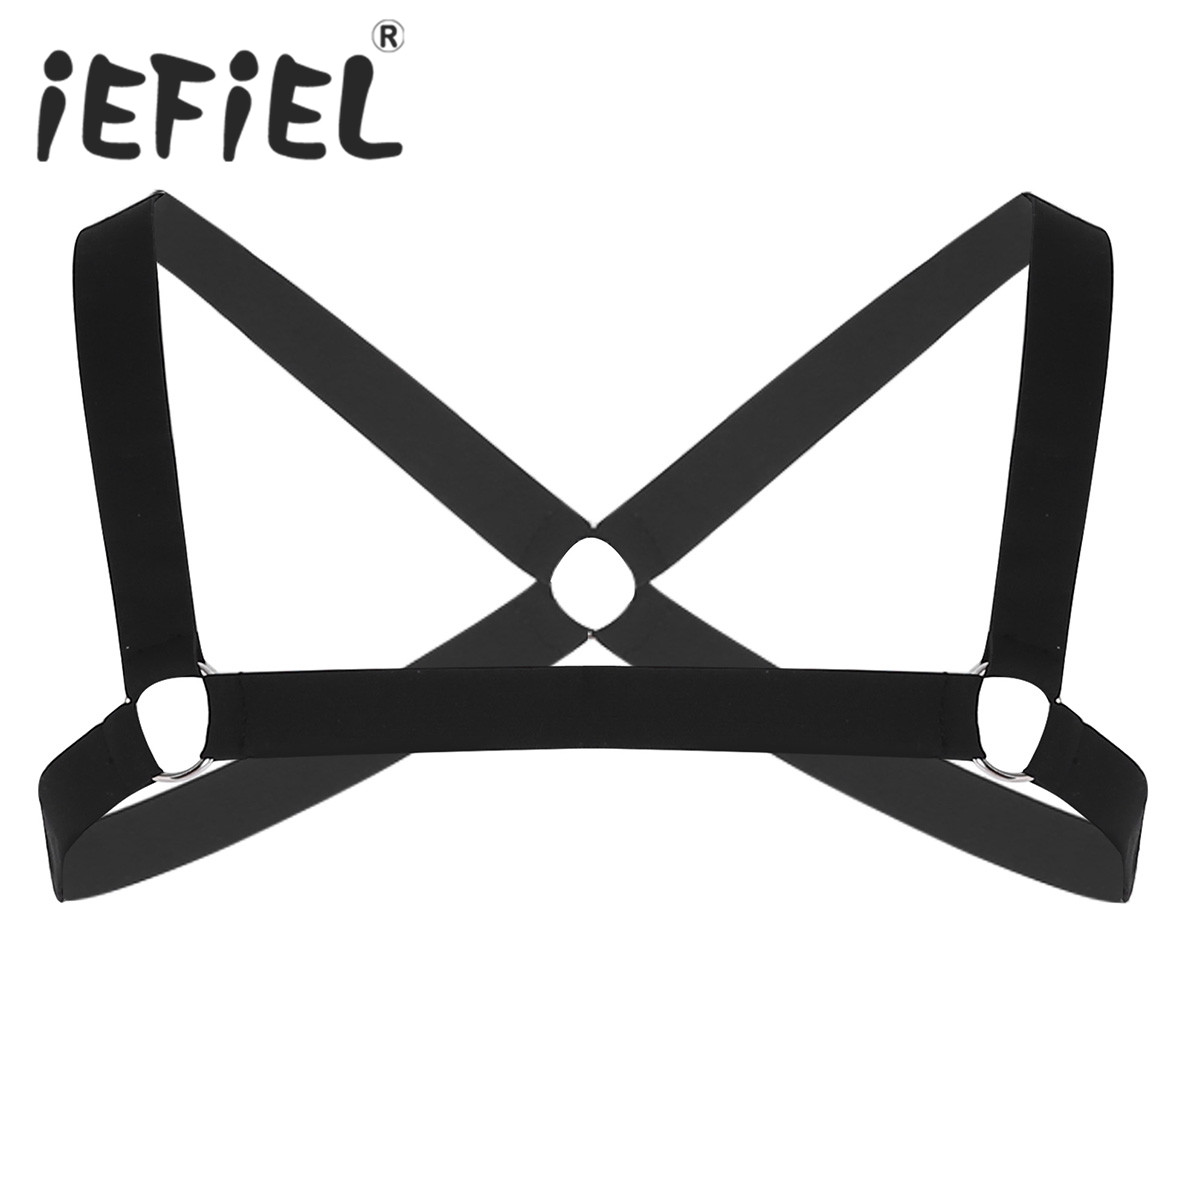 Fashion Sexy Mens Shoulder Straps X-Shape Chest Muscle Harness Belt with Metal O-rings Fancy Club Party Costume Strap Accessory